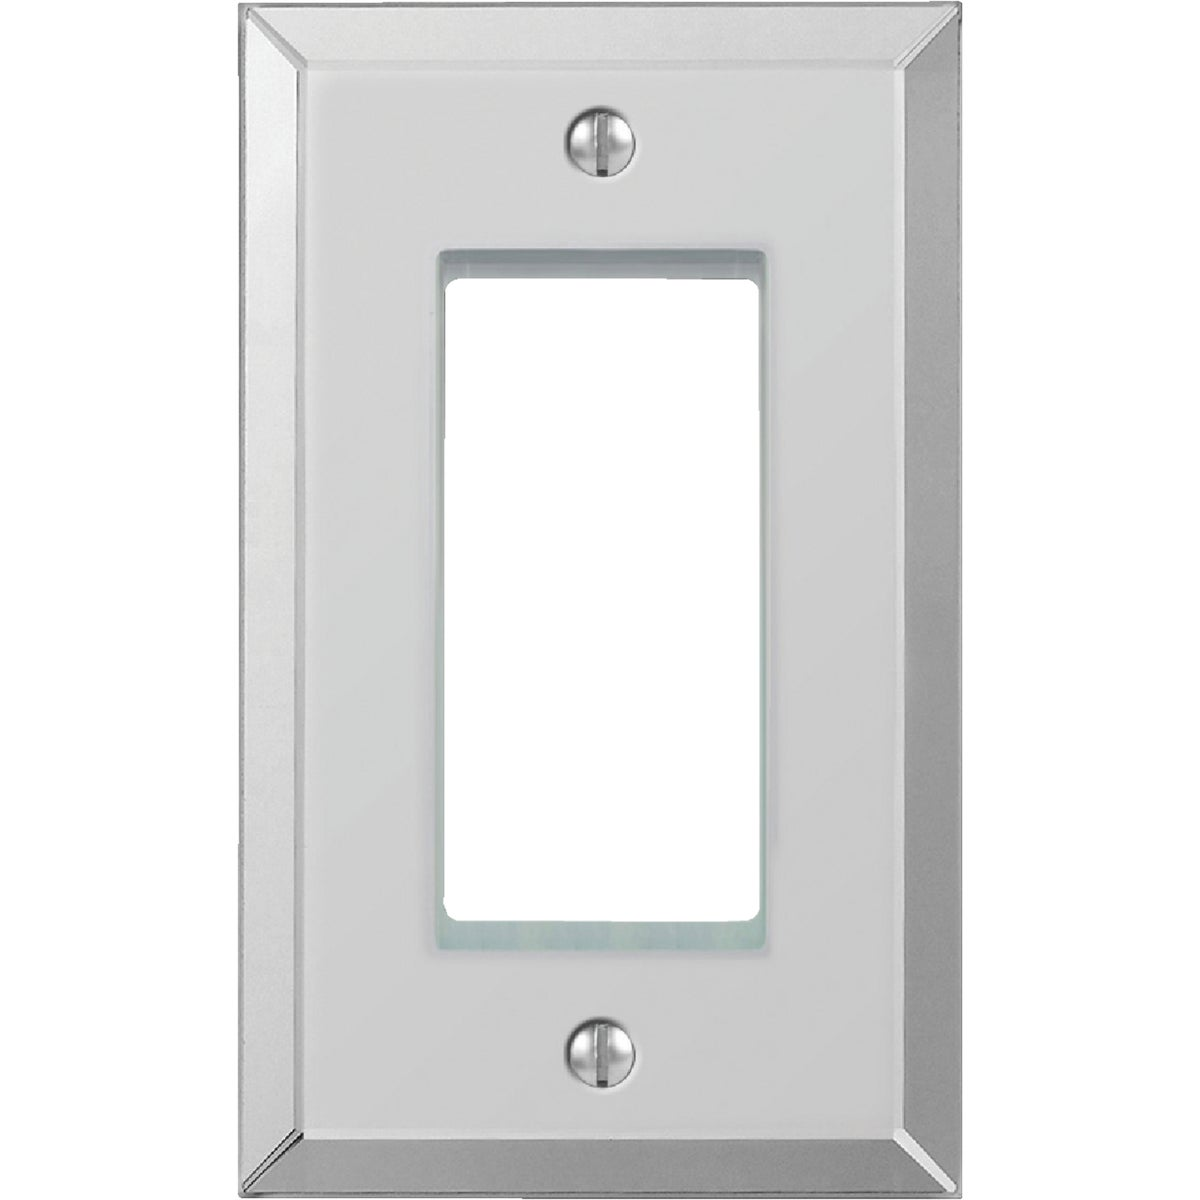 1RKRBVL MIRR WALLPLATE - 9MC117 by Jackson Deerfield Mf